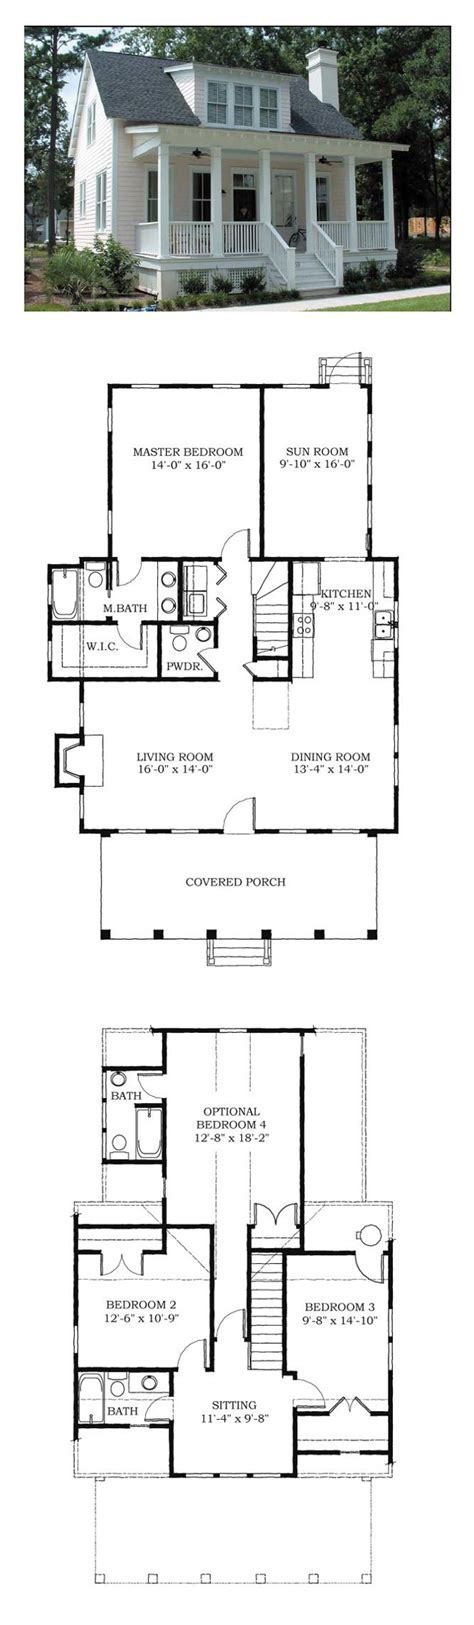 small mansion floor plans 101 interior design ideas home bunch interior design ideas